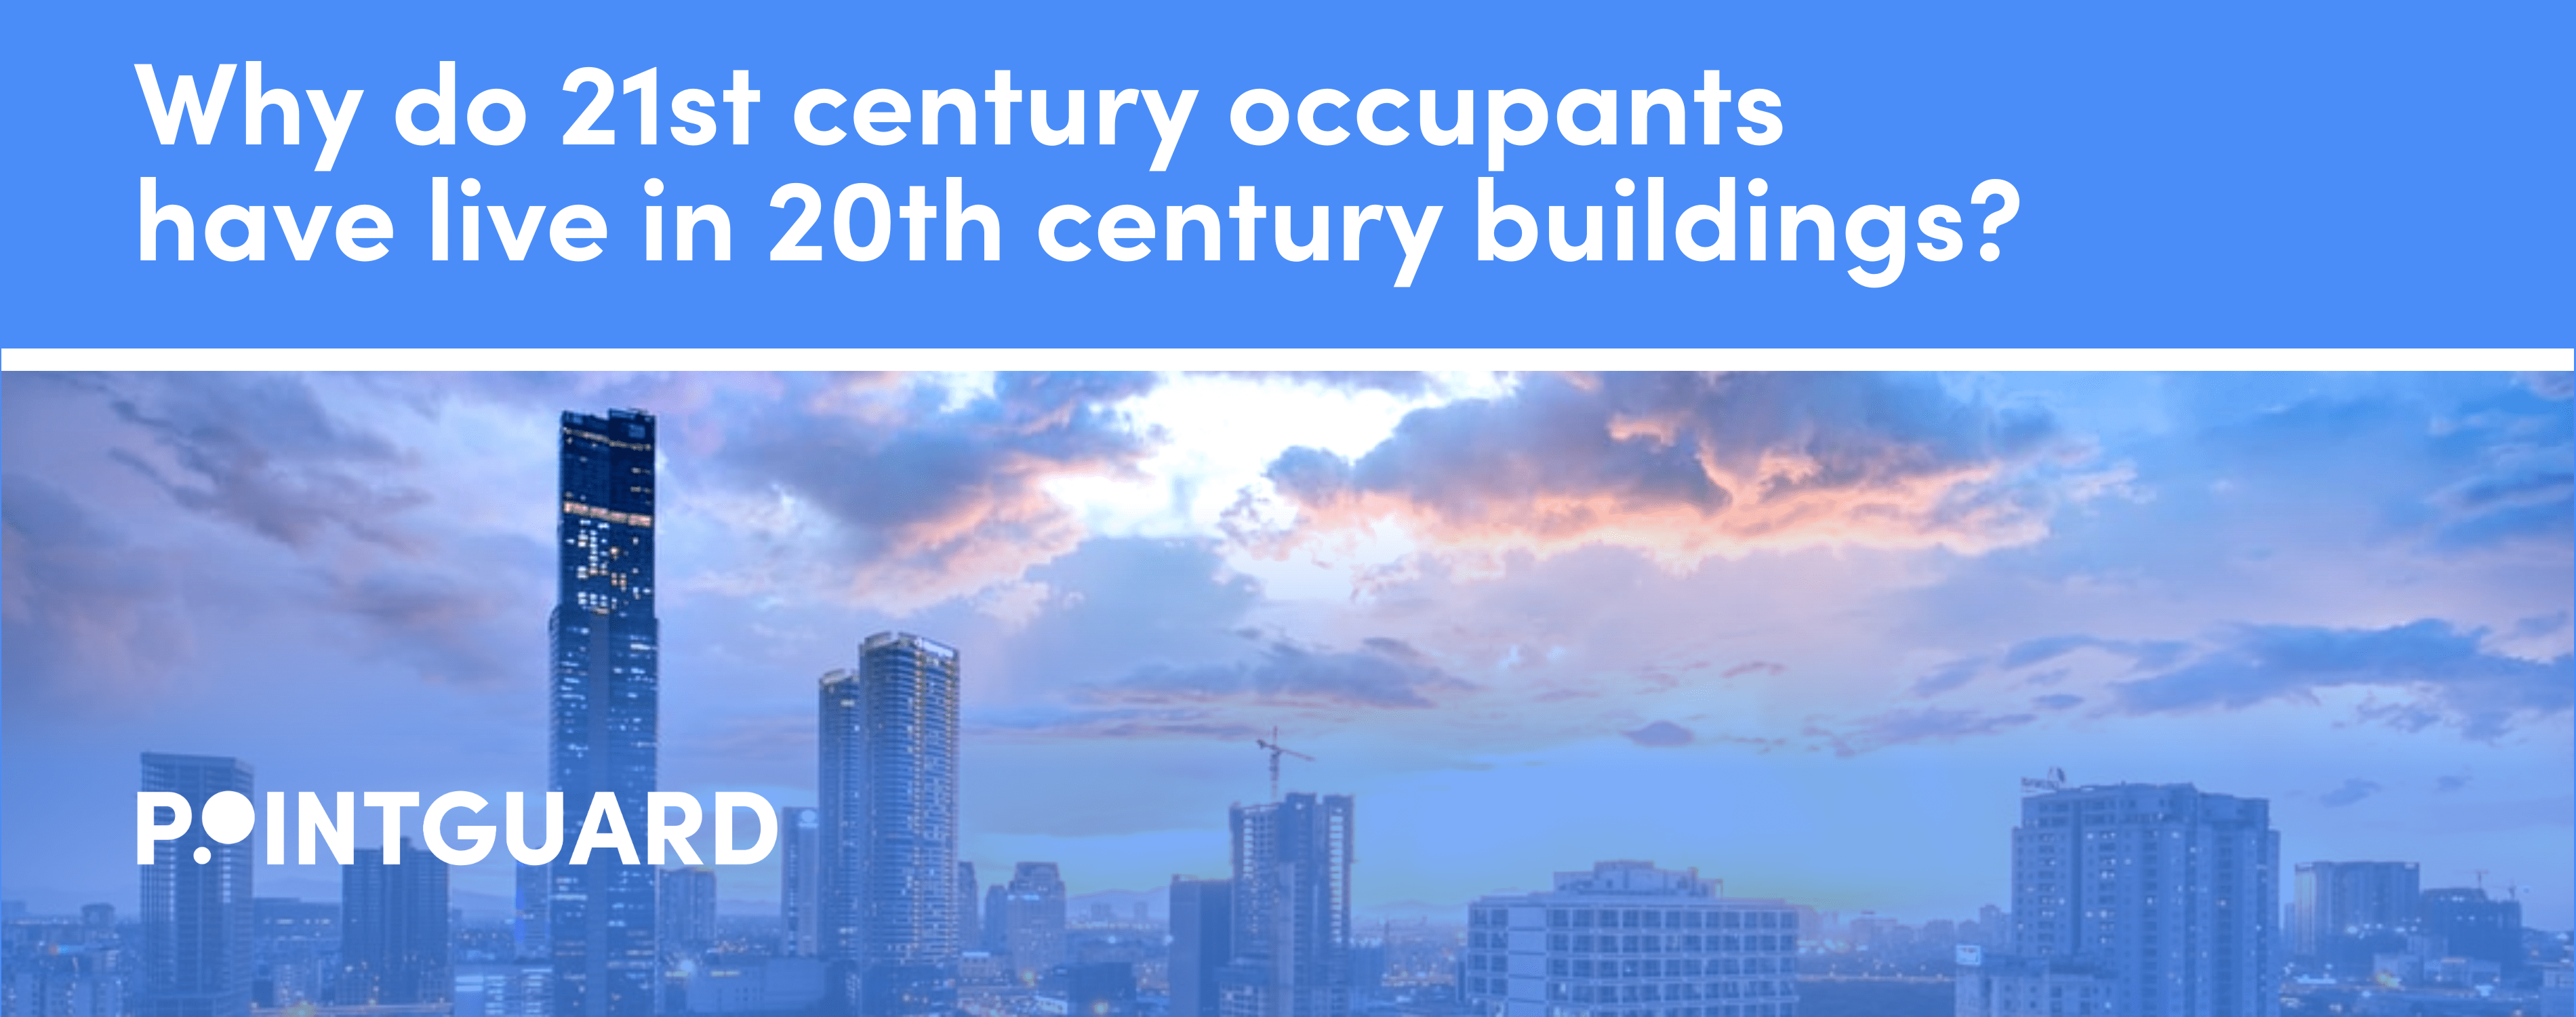 Why do 21st century occupants live in 20th century buildings?